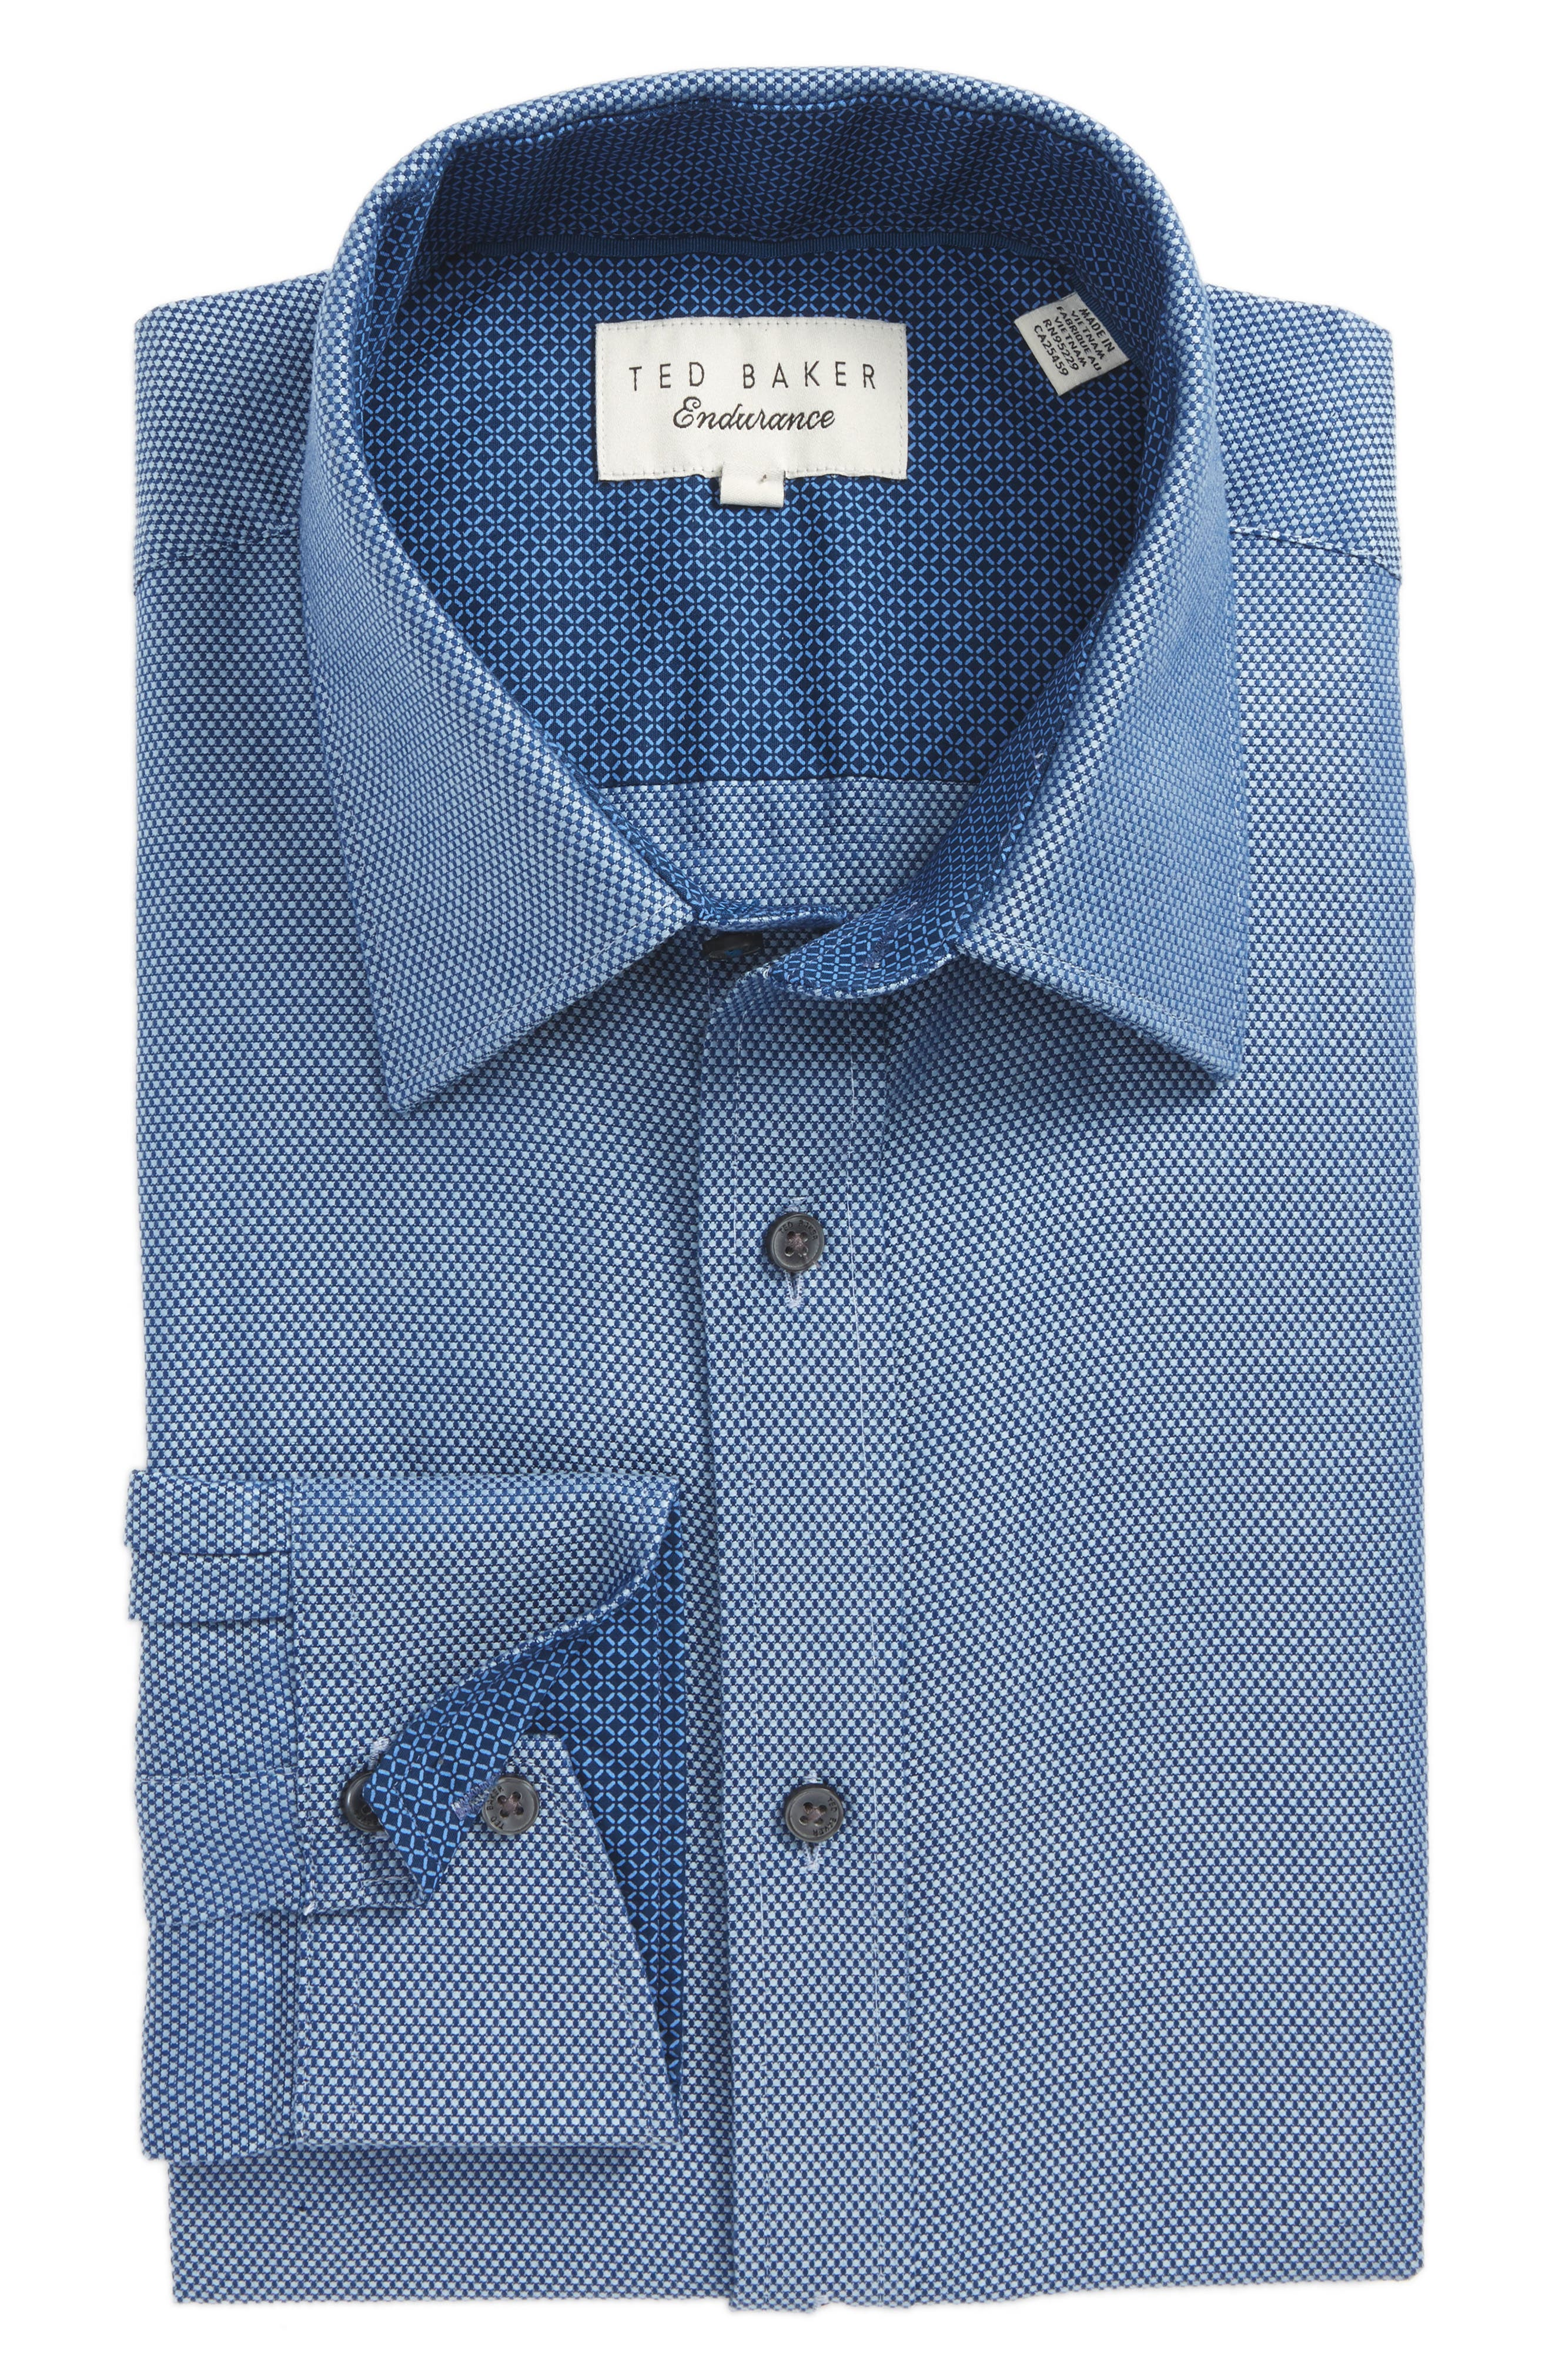 Endurance Trim Fit Dobby Dress Shirt,                         Main,                         color, 400